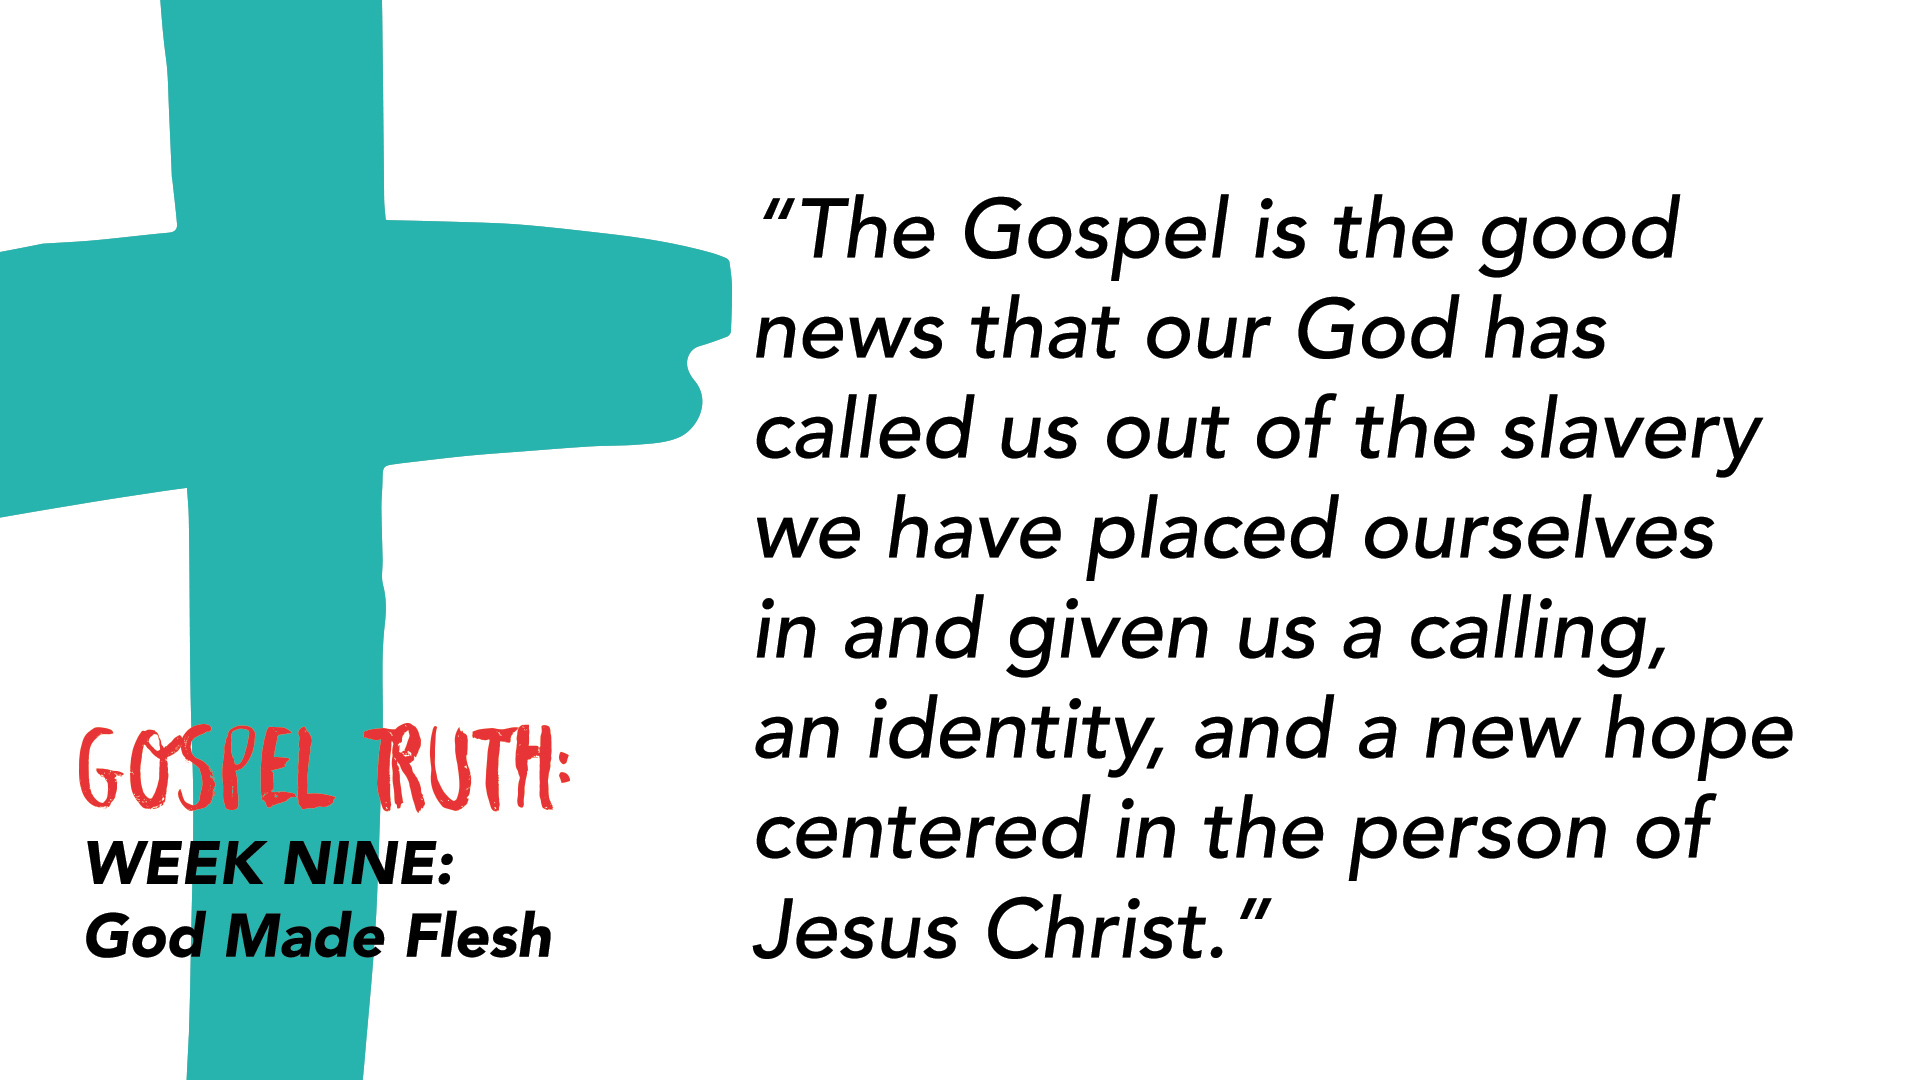 The Gospel is the good news that our God has called us out of the slavery we have placed ourselves in and given us a calling, 